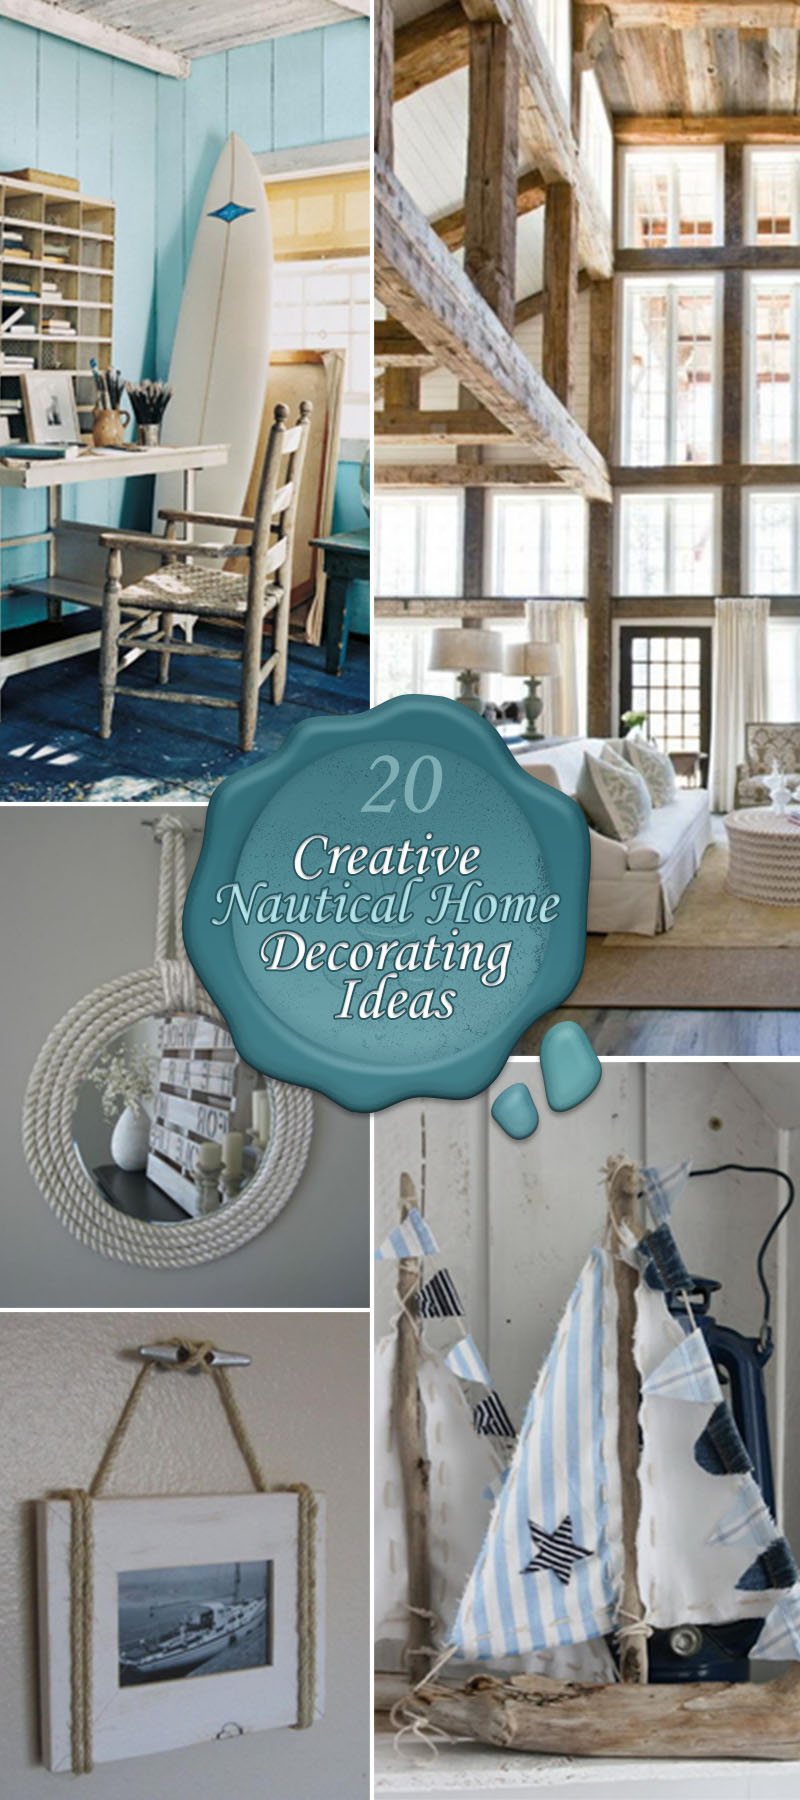 Creative Nautical Home Decorating Ideas!